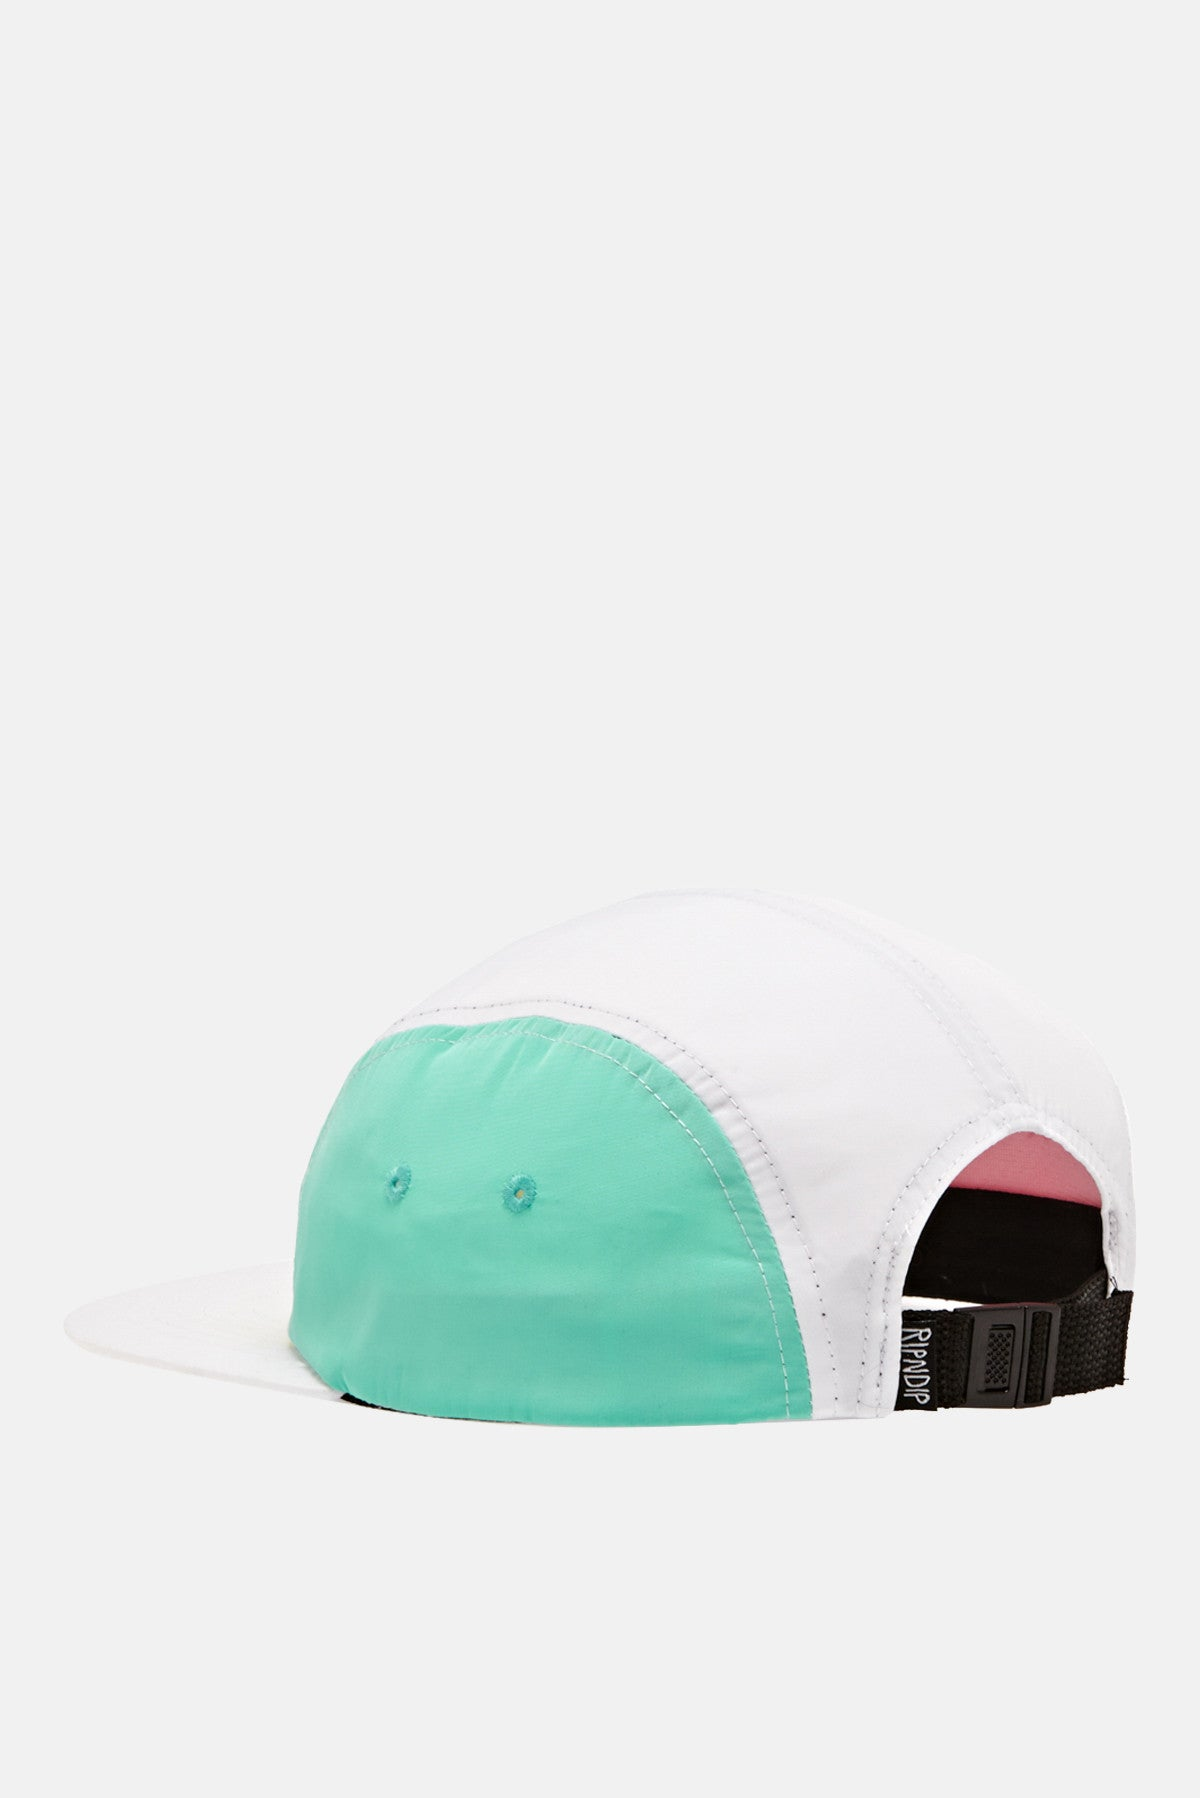 Boné Rip N Dip Beaches 5 Panel Camper available from Priory 8cdee1c0c18